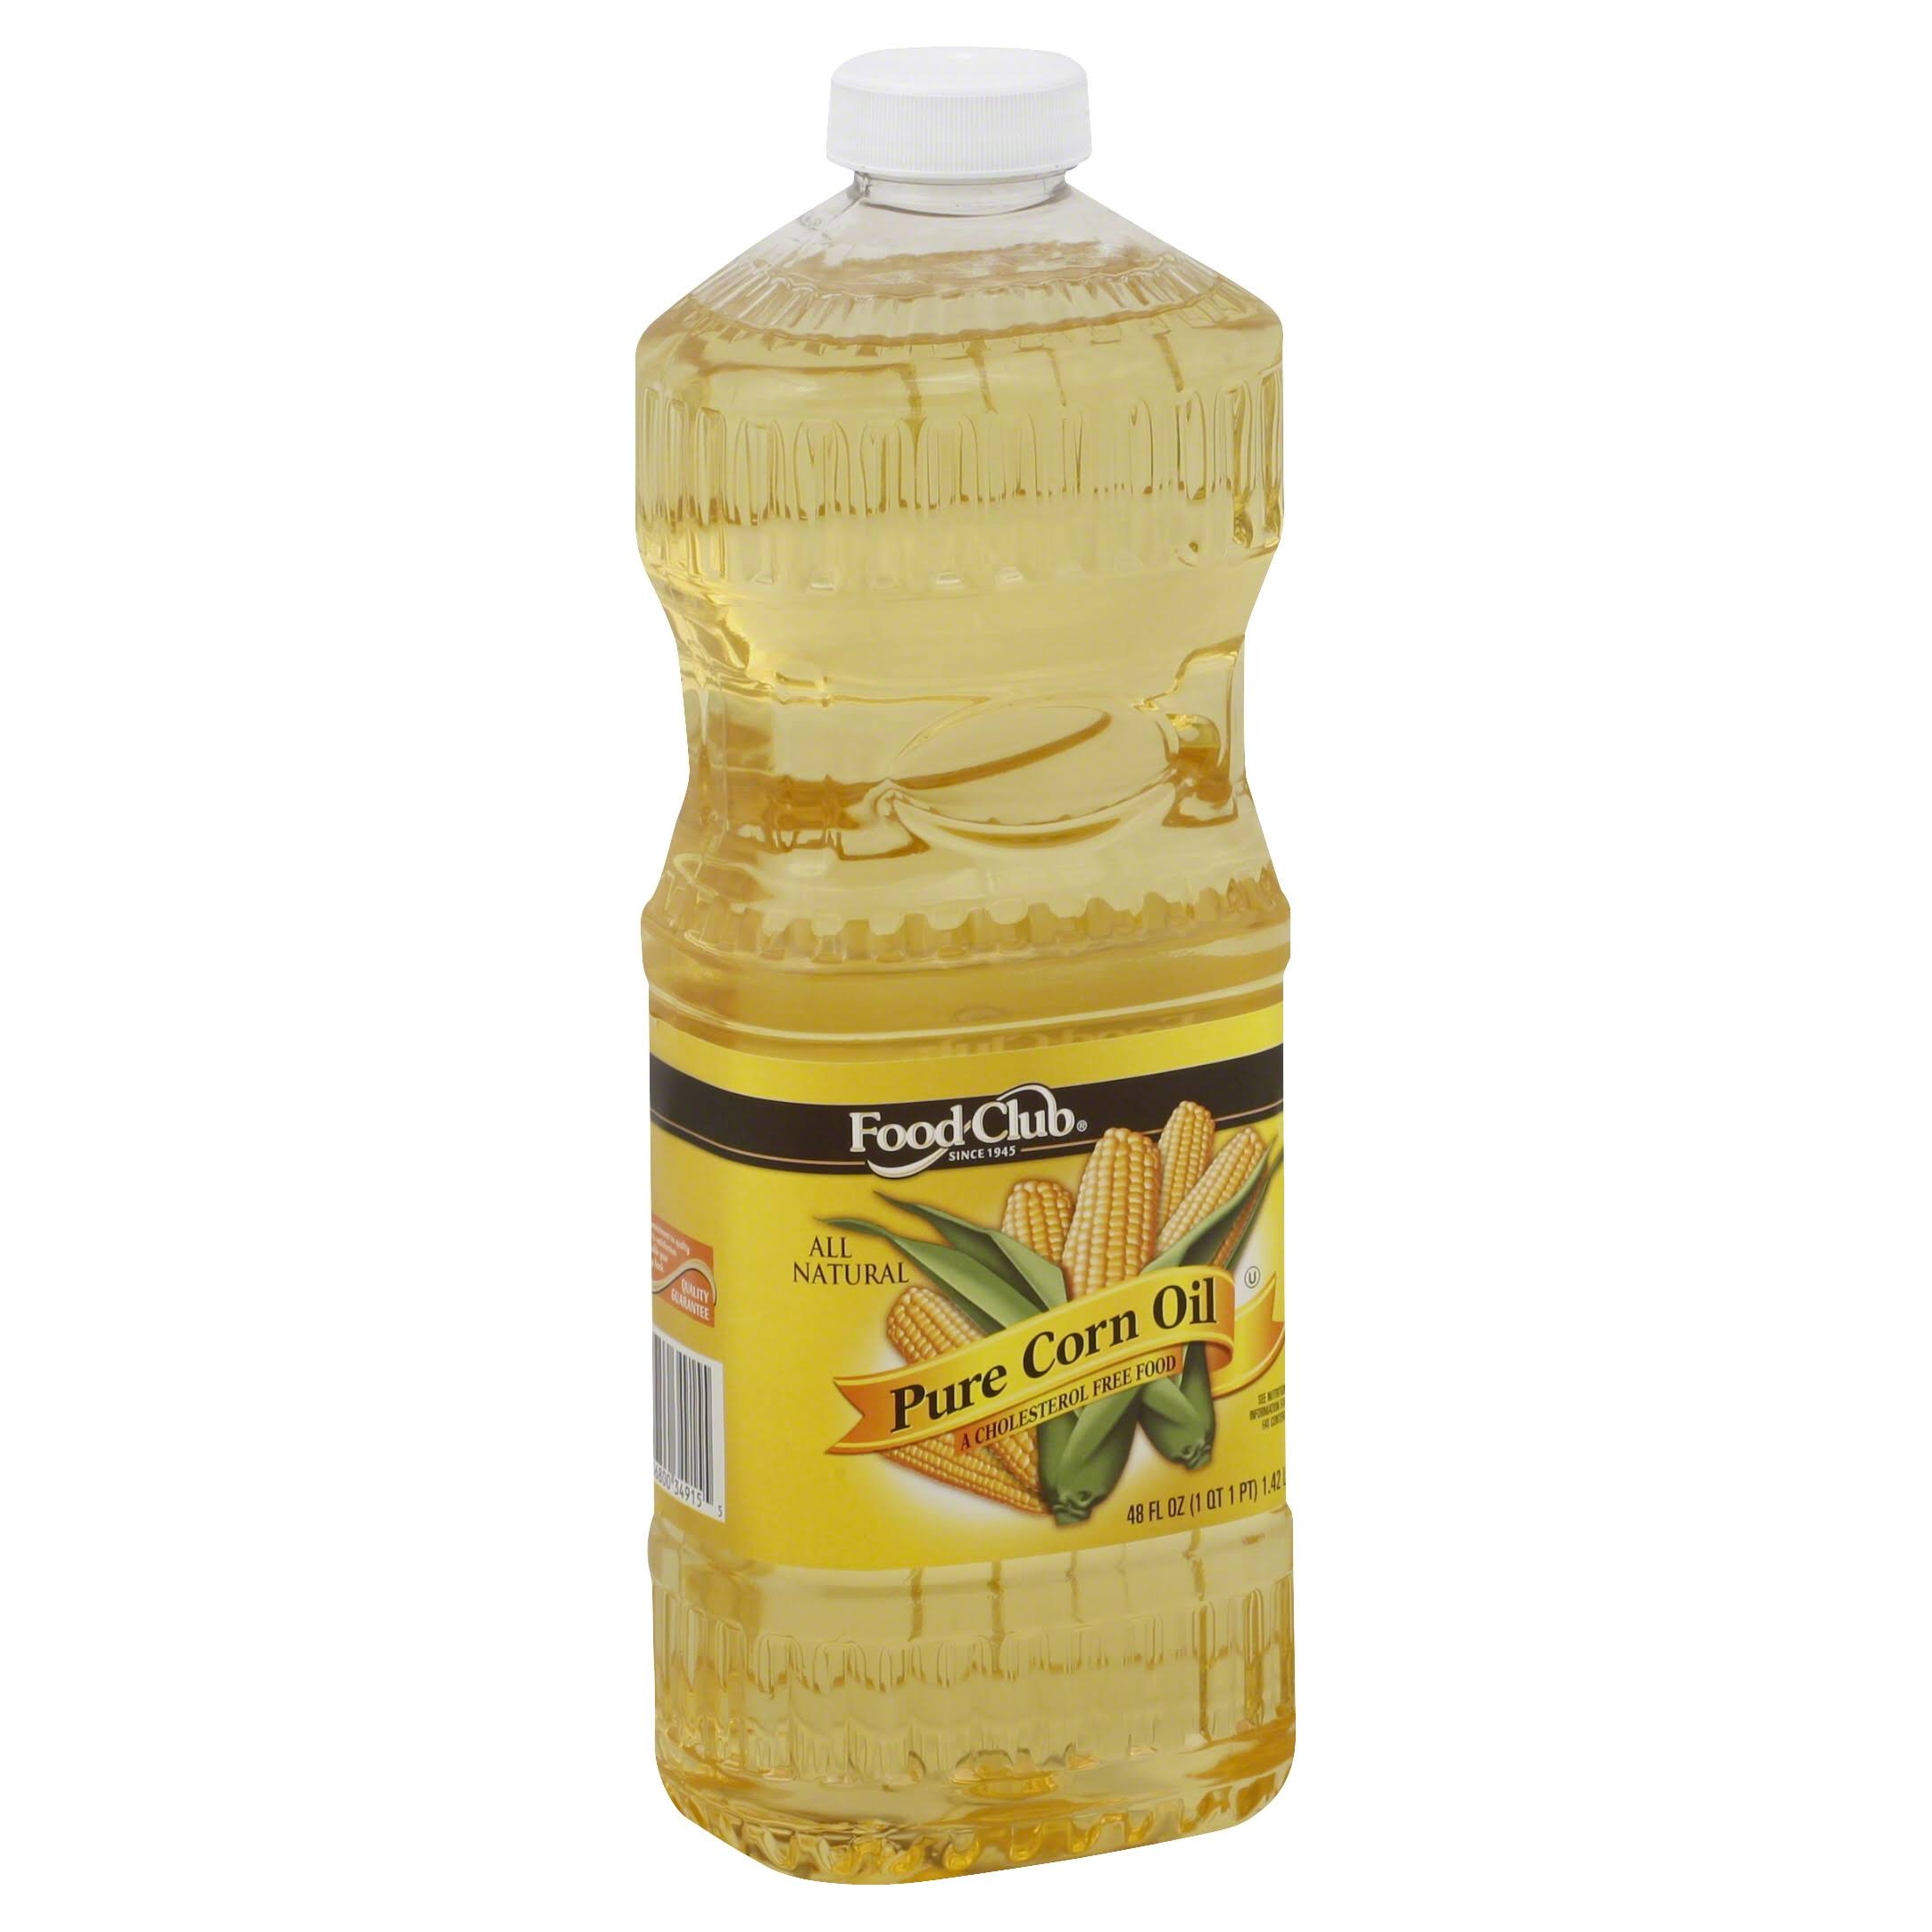 Food Club Corn Oil, Pure - 48 fl oz